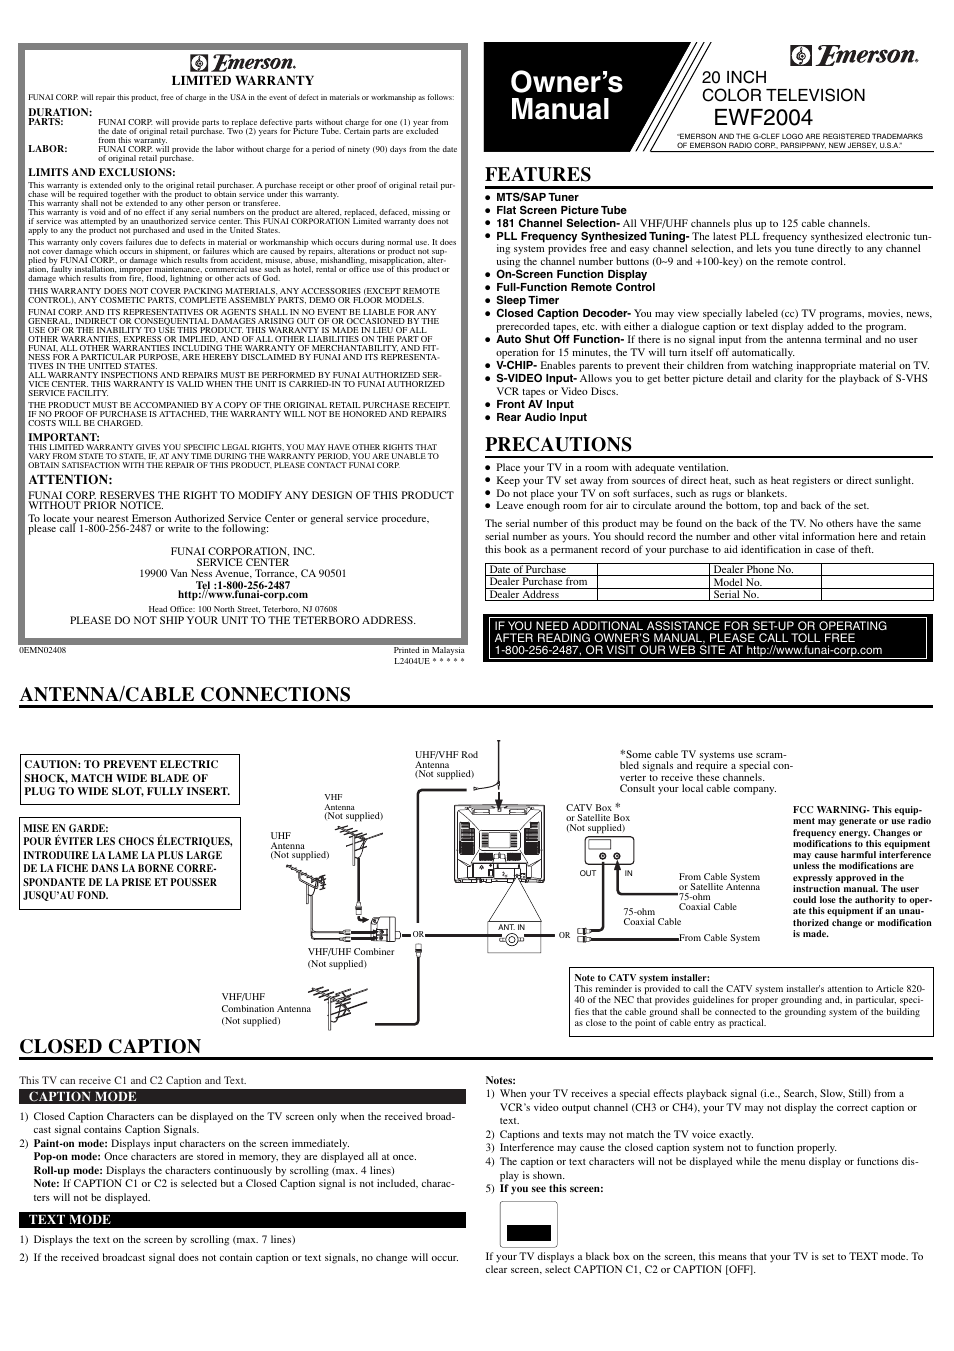 Emerson EWF2004 User Manual | 8 pages